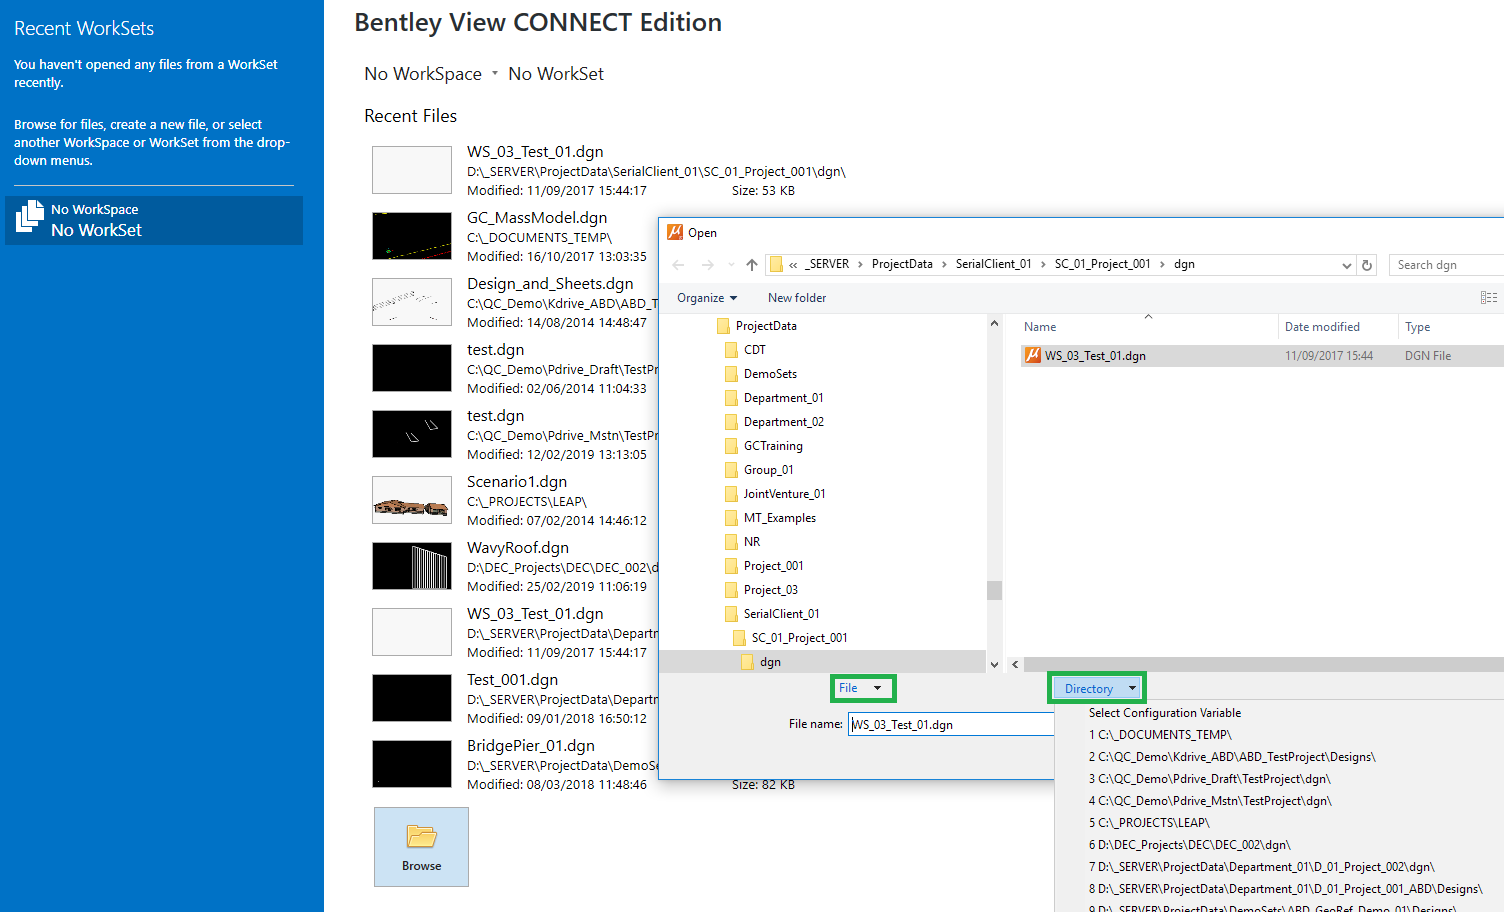 How to change default file opening path in Bentley view